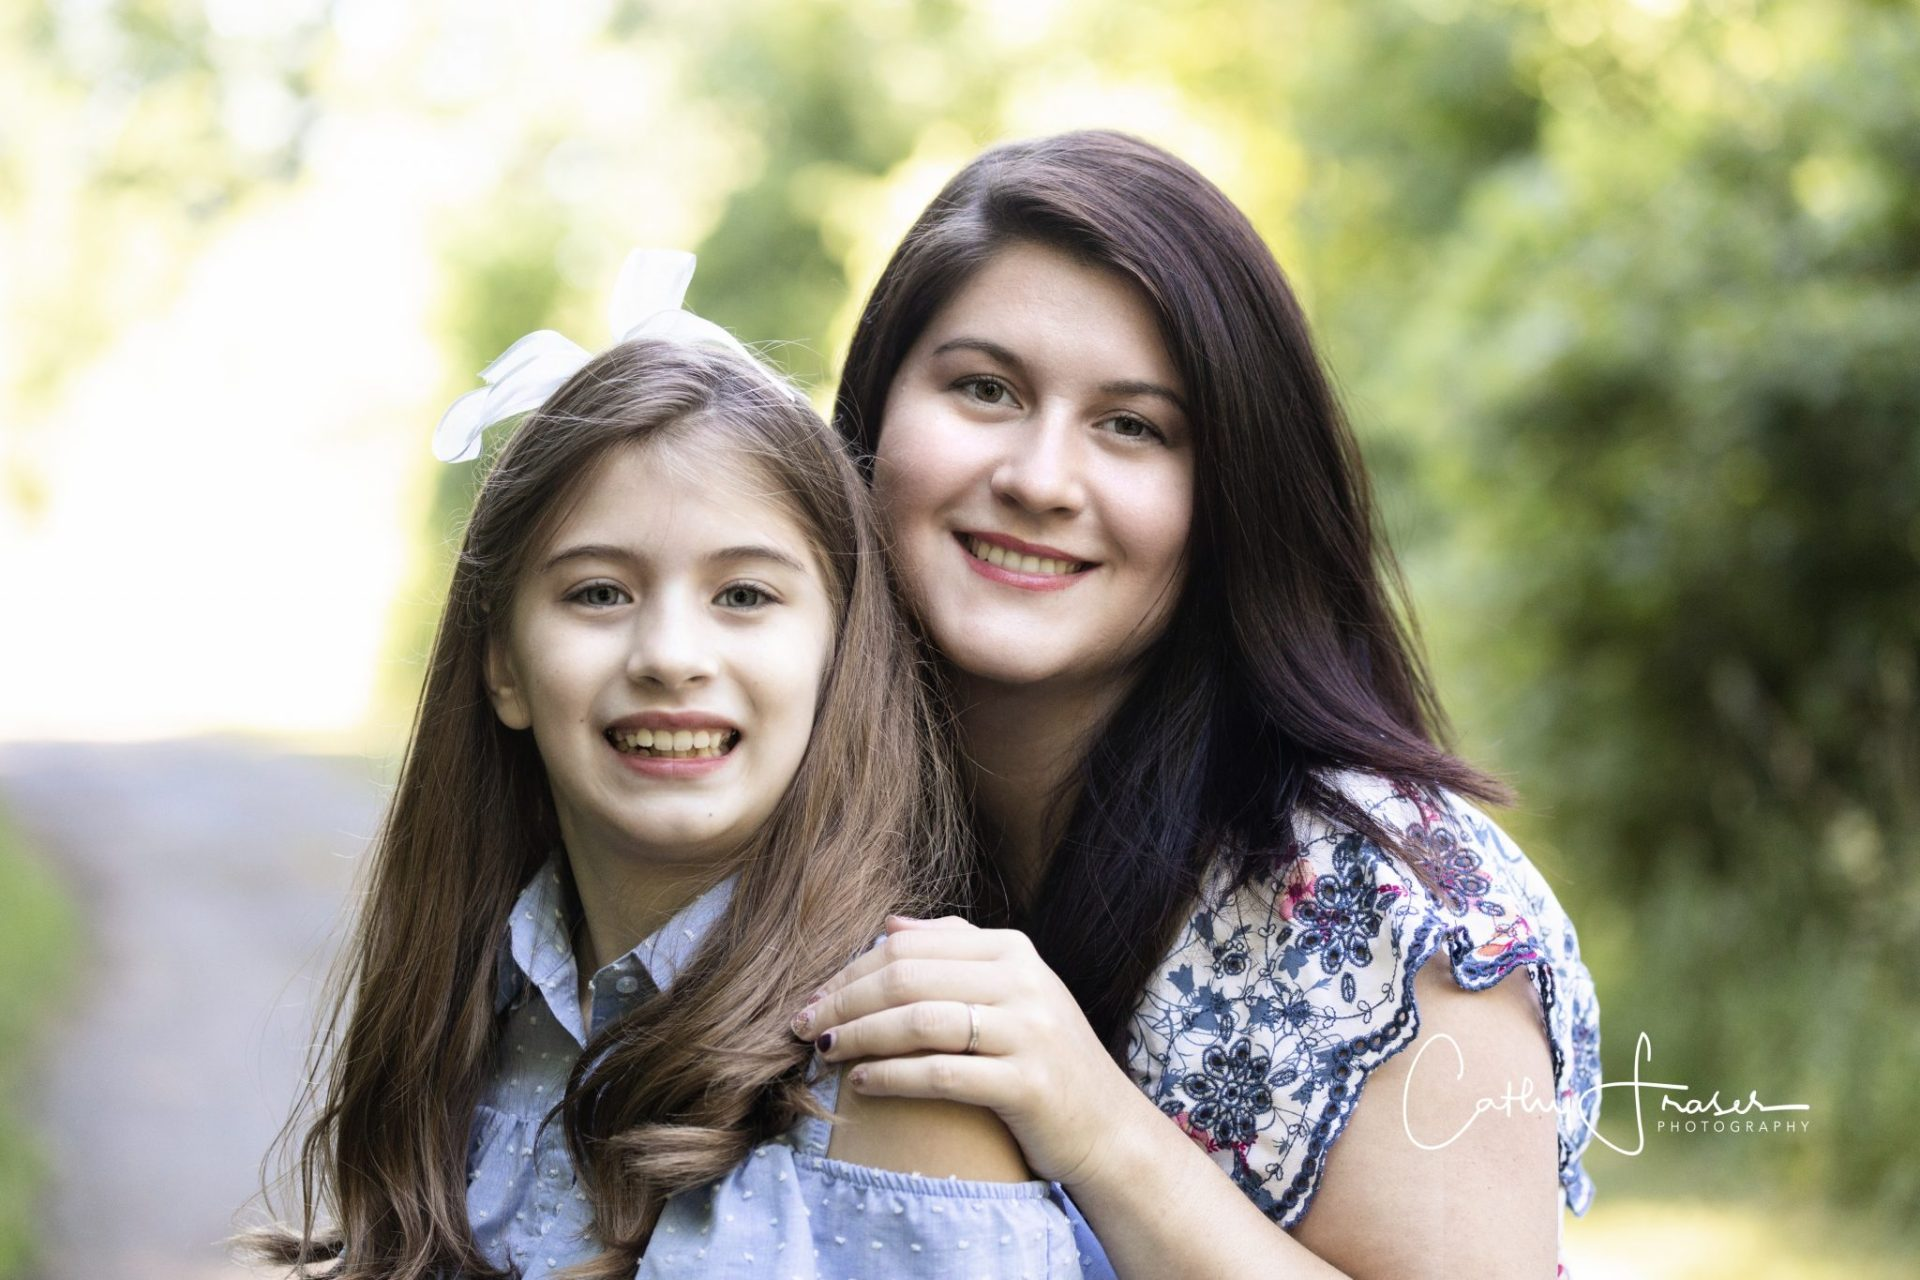 mother & daughter portraits, family pictures, family photos, professional portraits, professional pictures, Rochester, New York